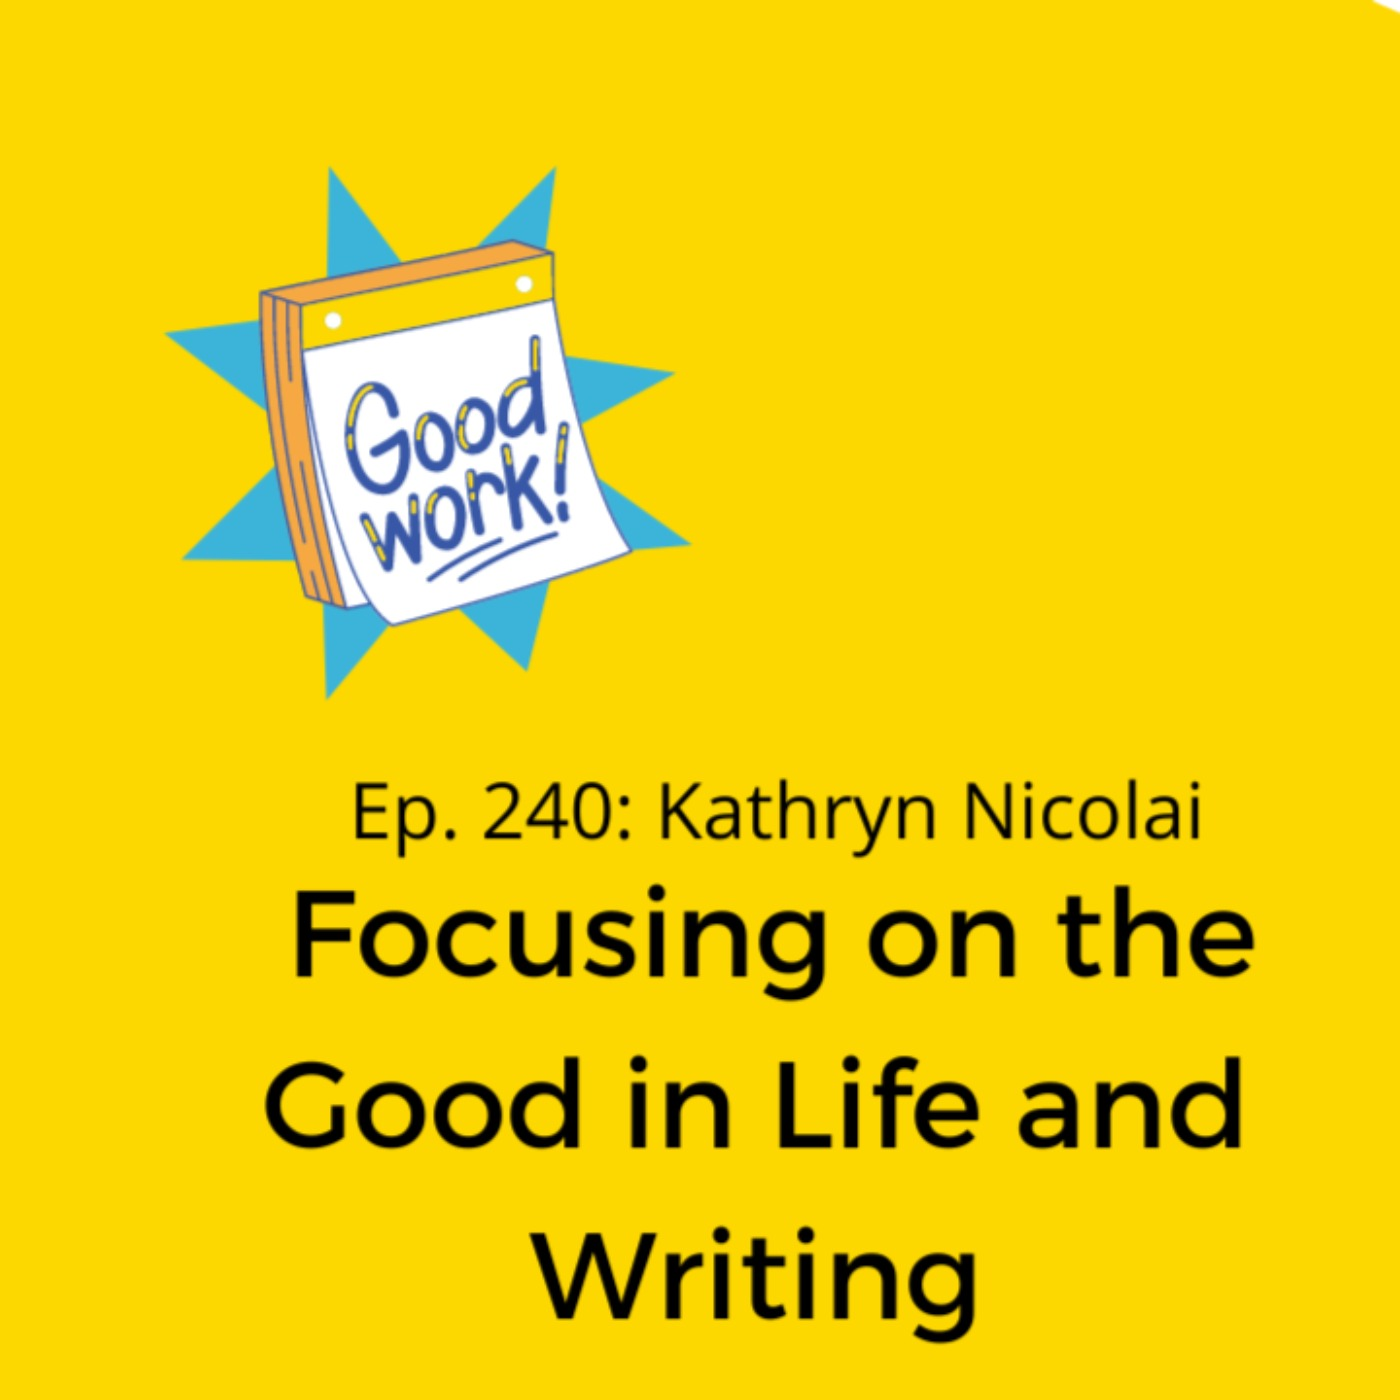 Ep. 240: Kathryn Nicolai on Focusing on the Good in Life and Writing